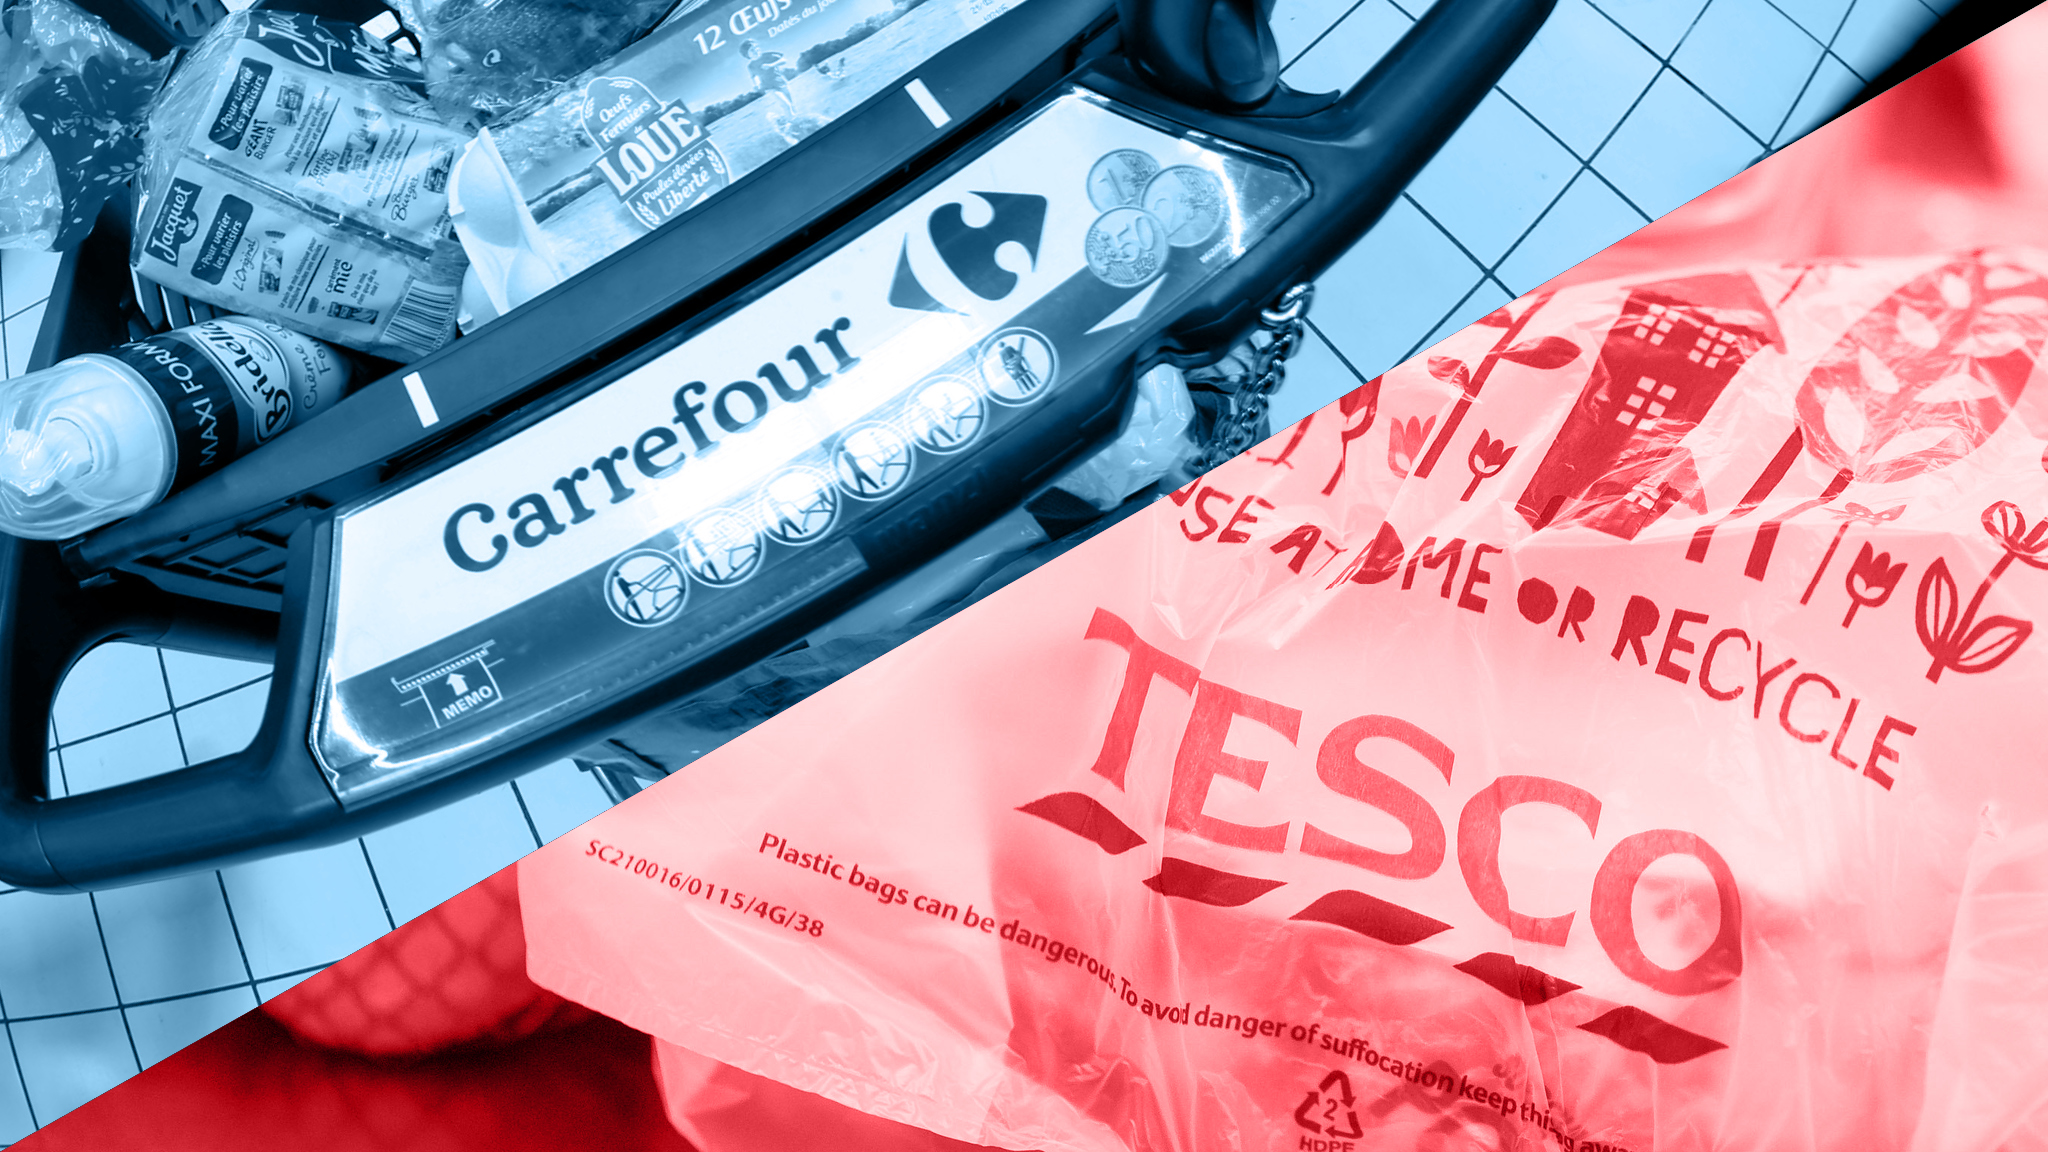 Tesco And Carrefour Team Up In Face Of Competitive Pressures